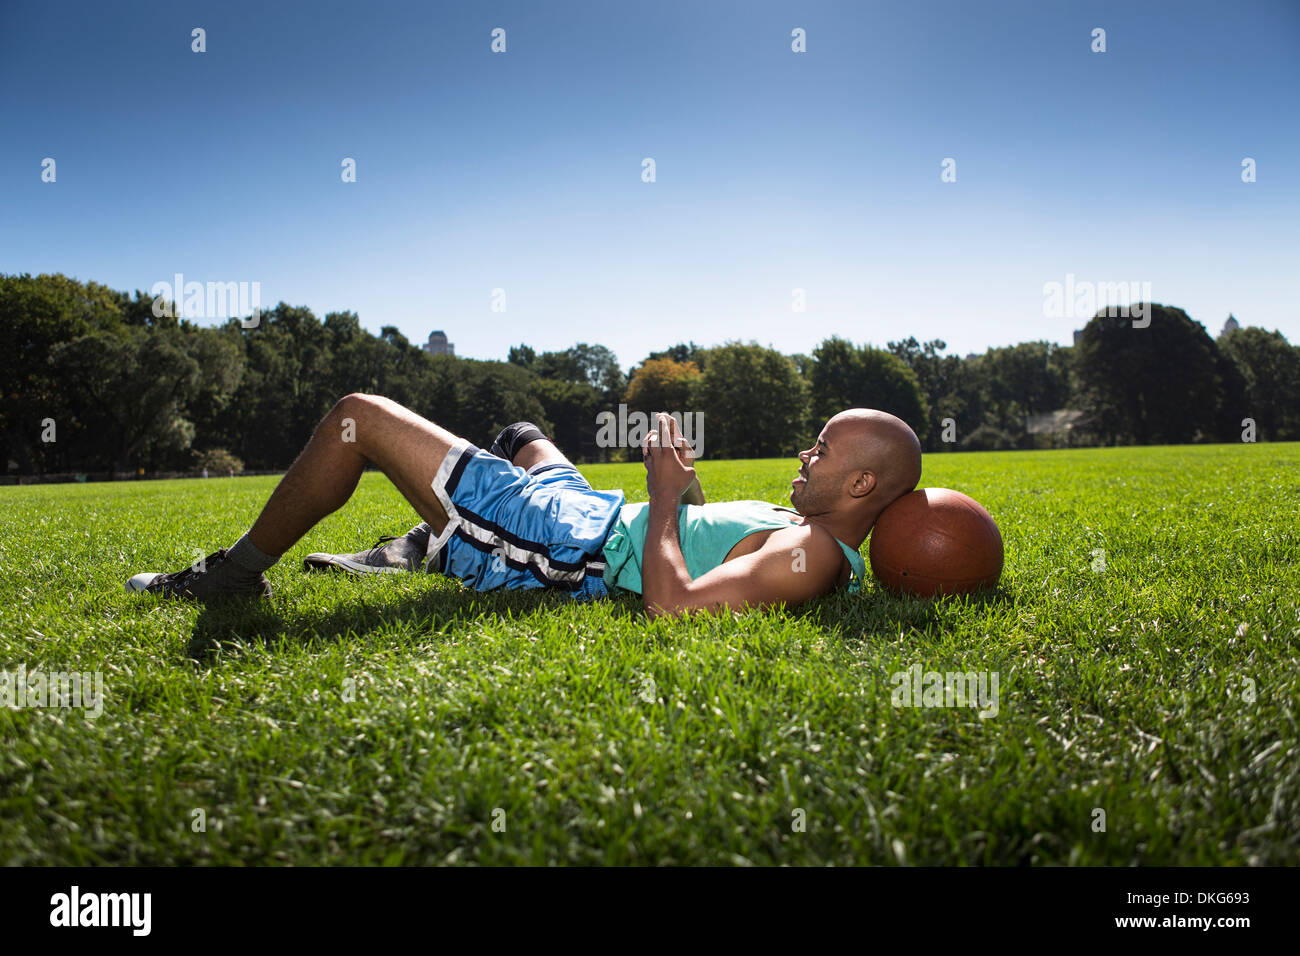 Young man lying on grass with head on basketball - Stock Image